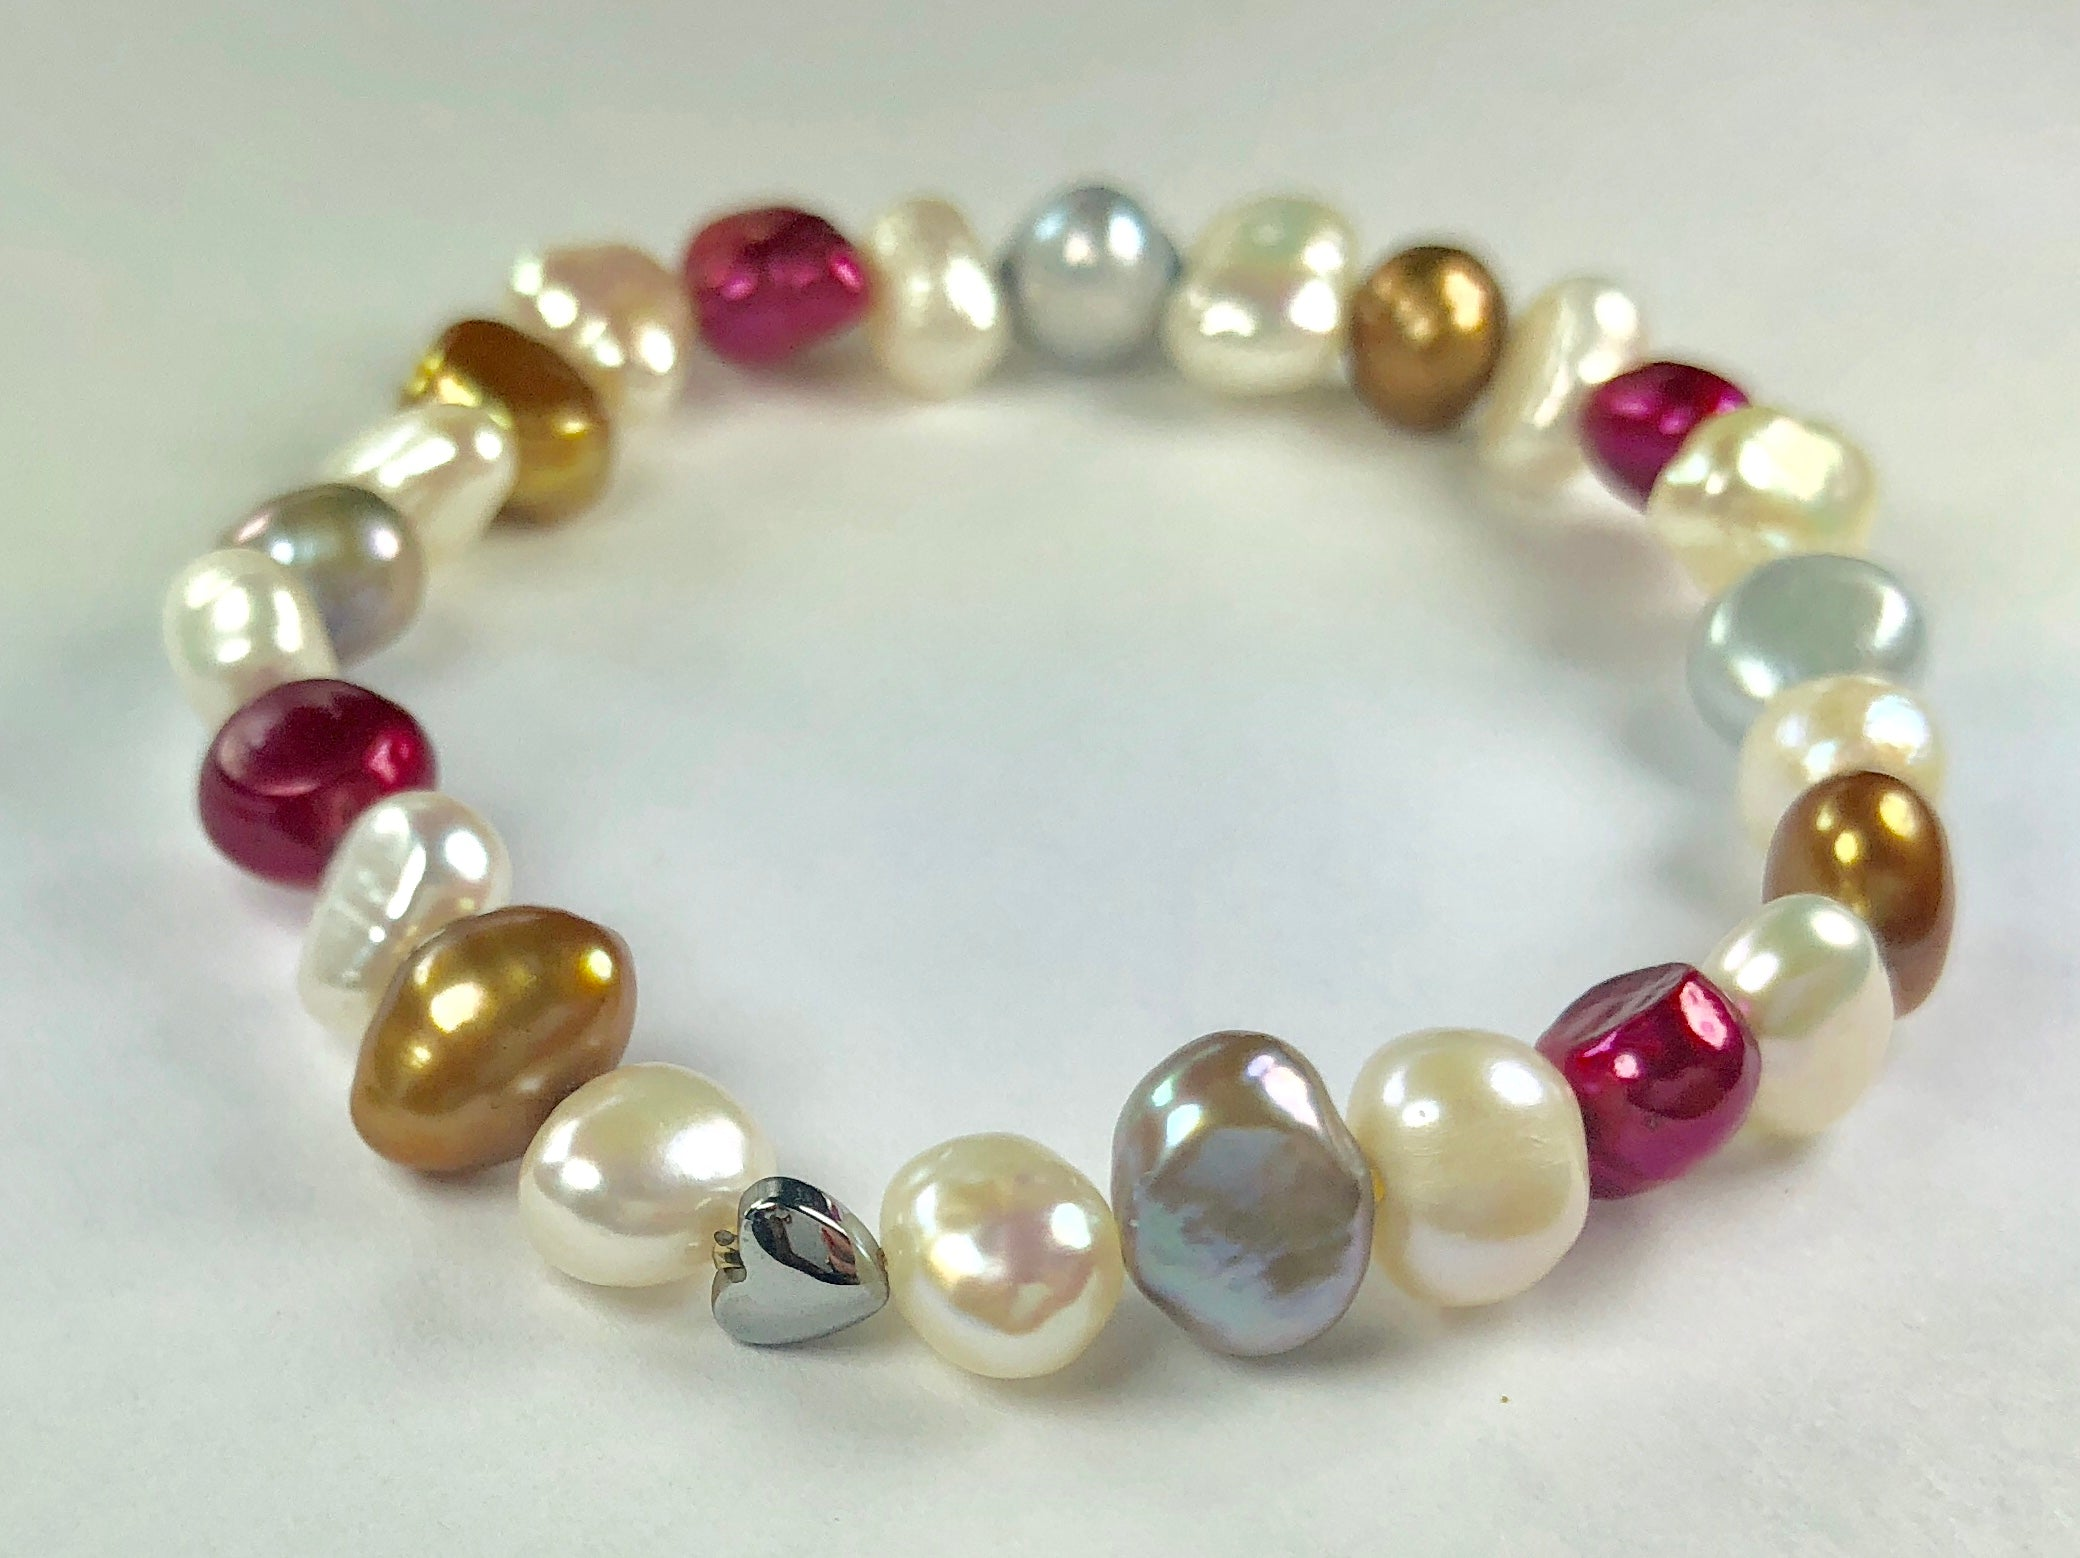 All Natural Beautiful Freshwater Cultured Pearl Stretch Bracelet for Girls